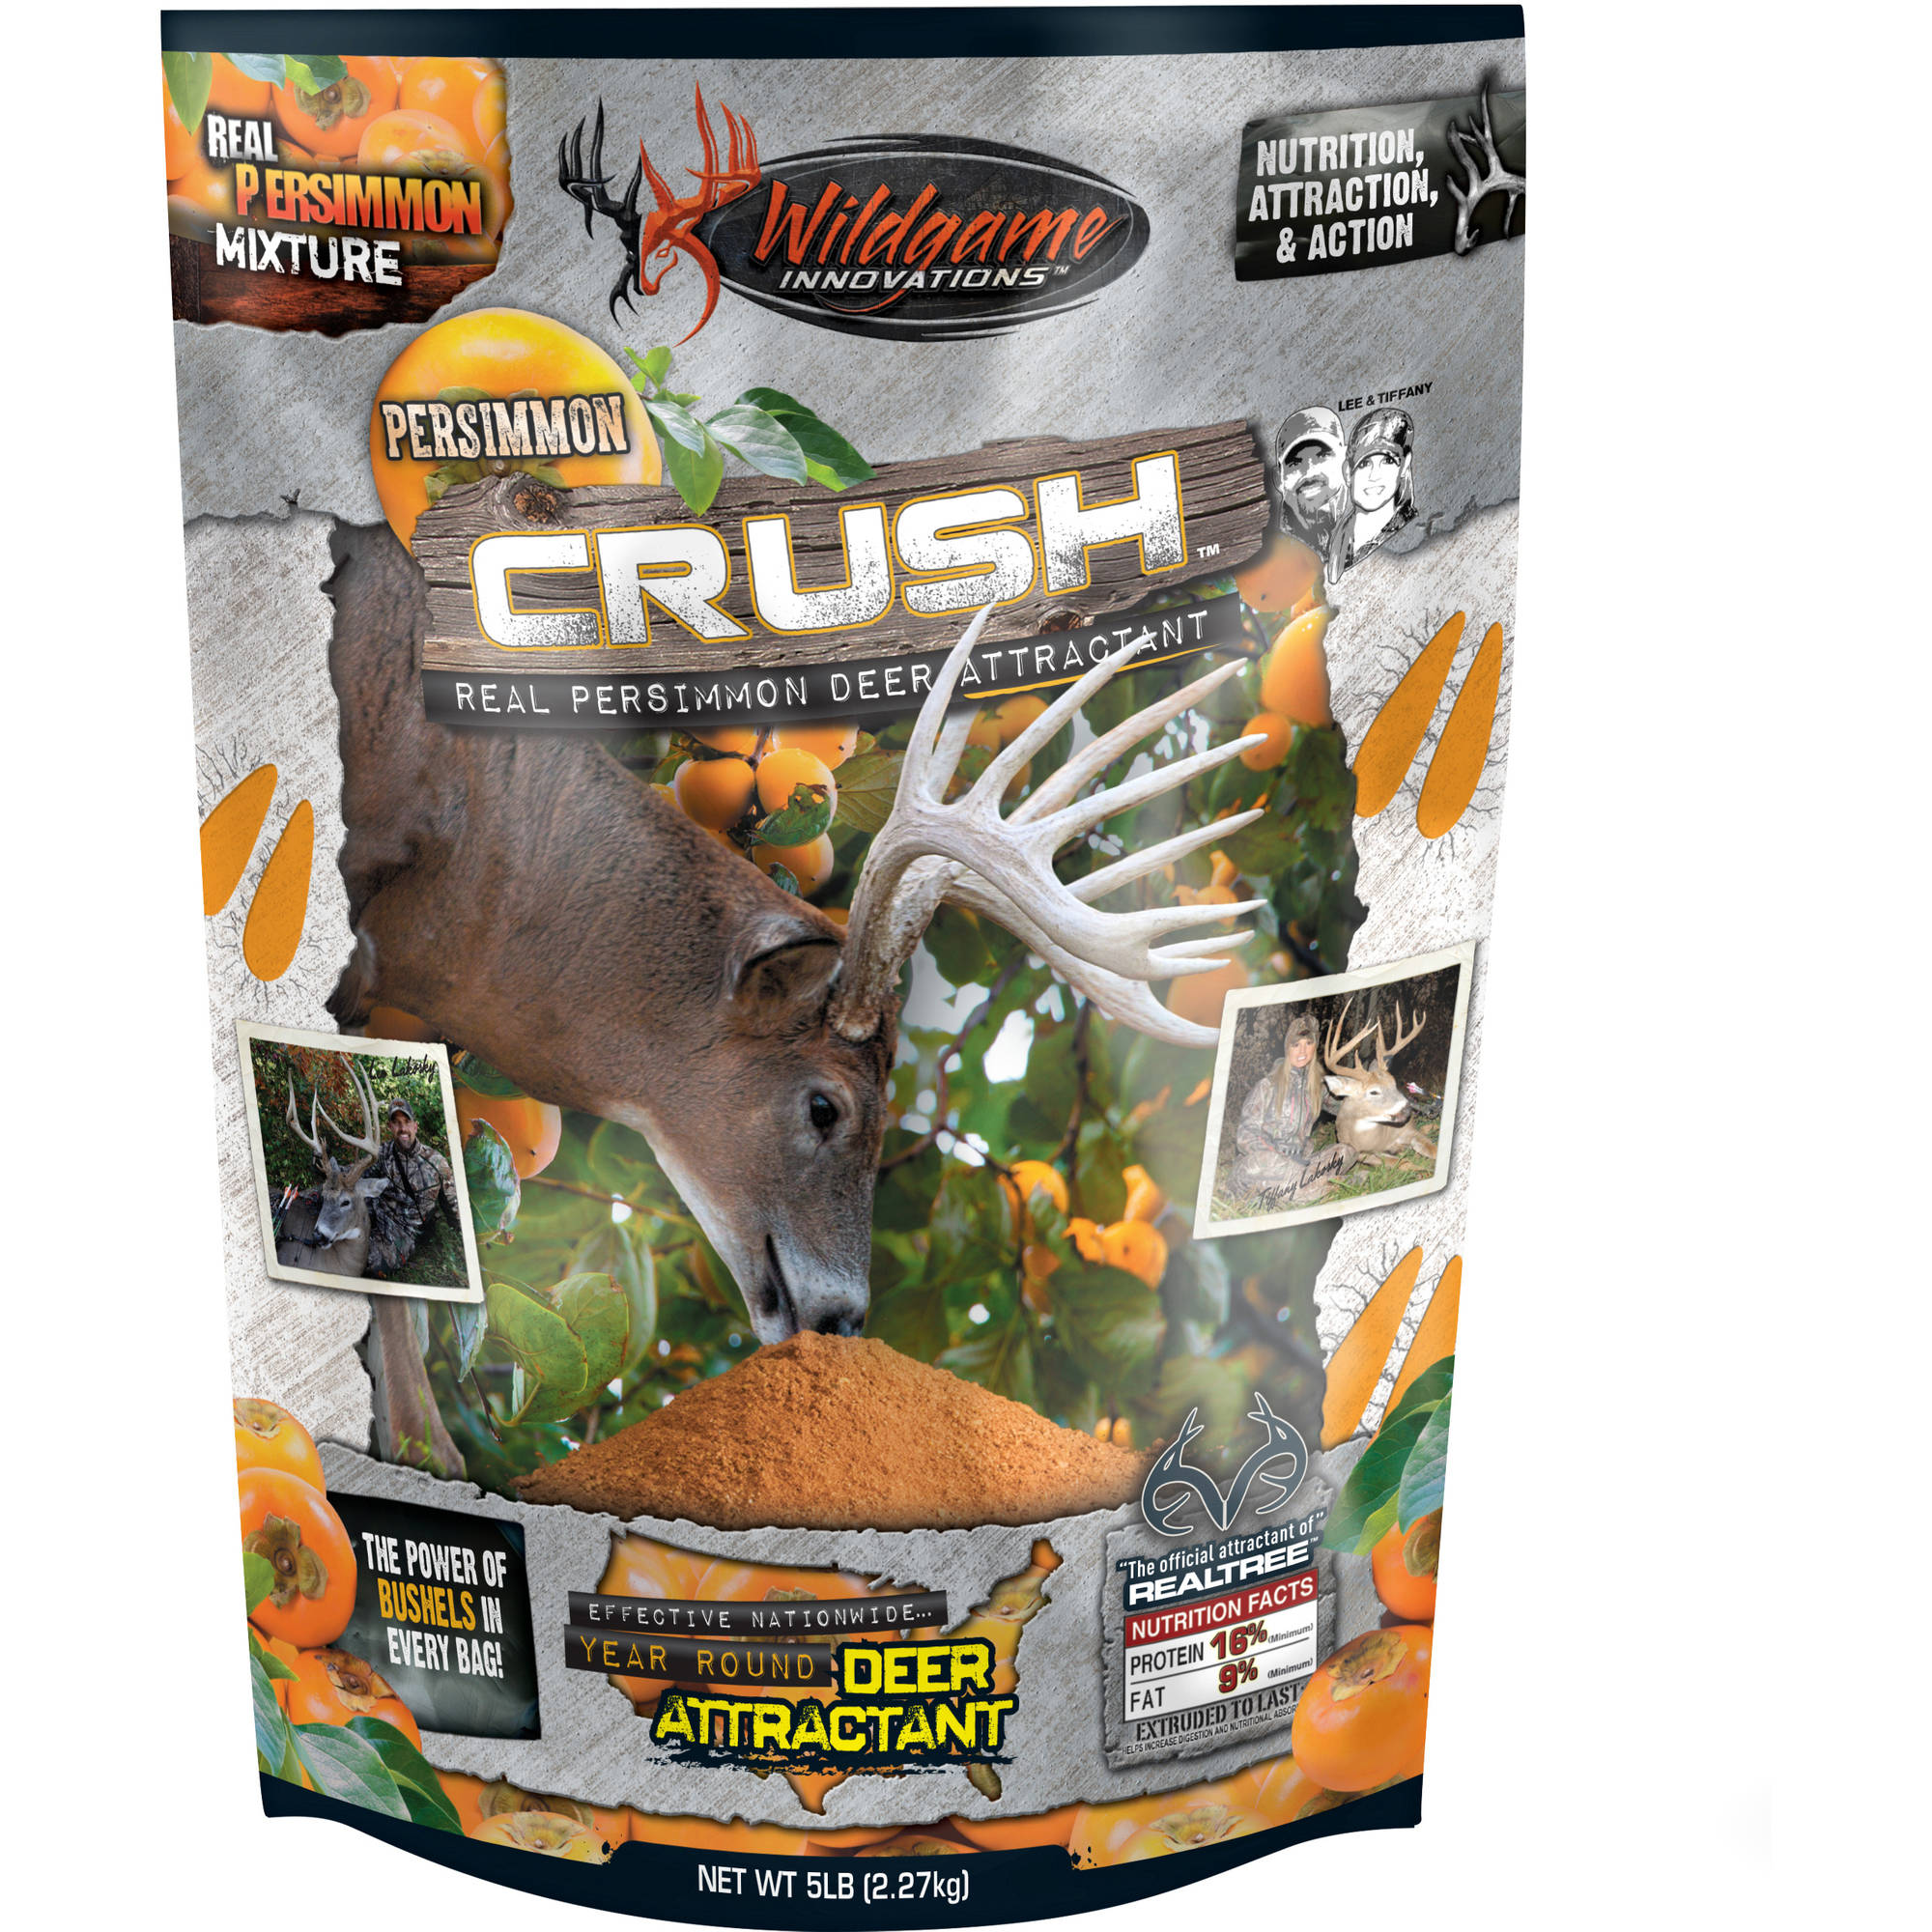 Wildgame Innovations Persimmon Crush Powder